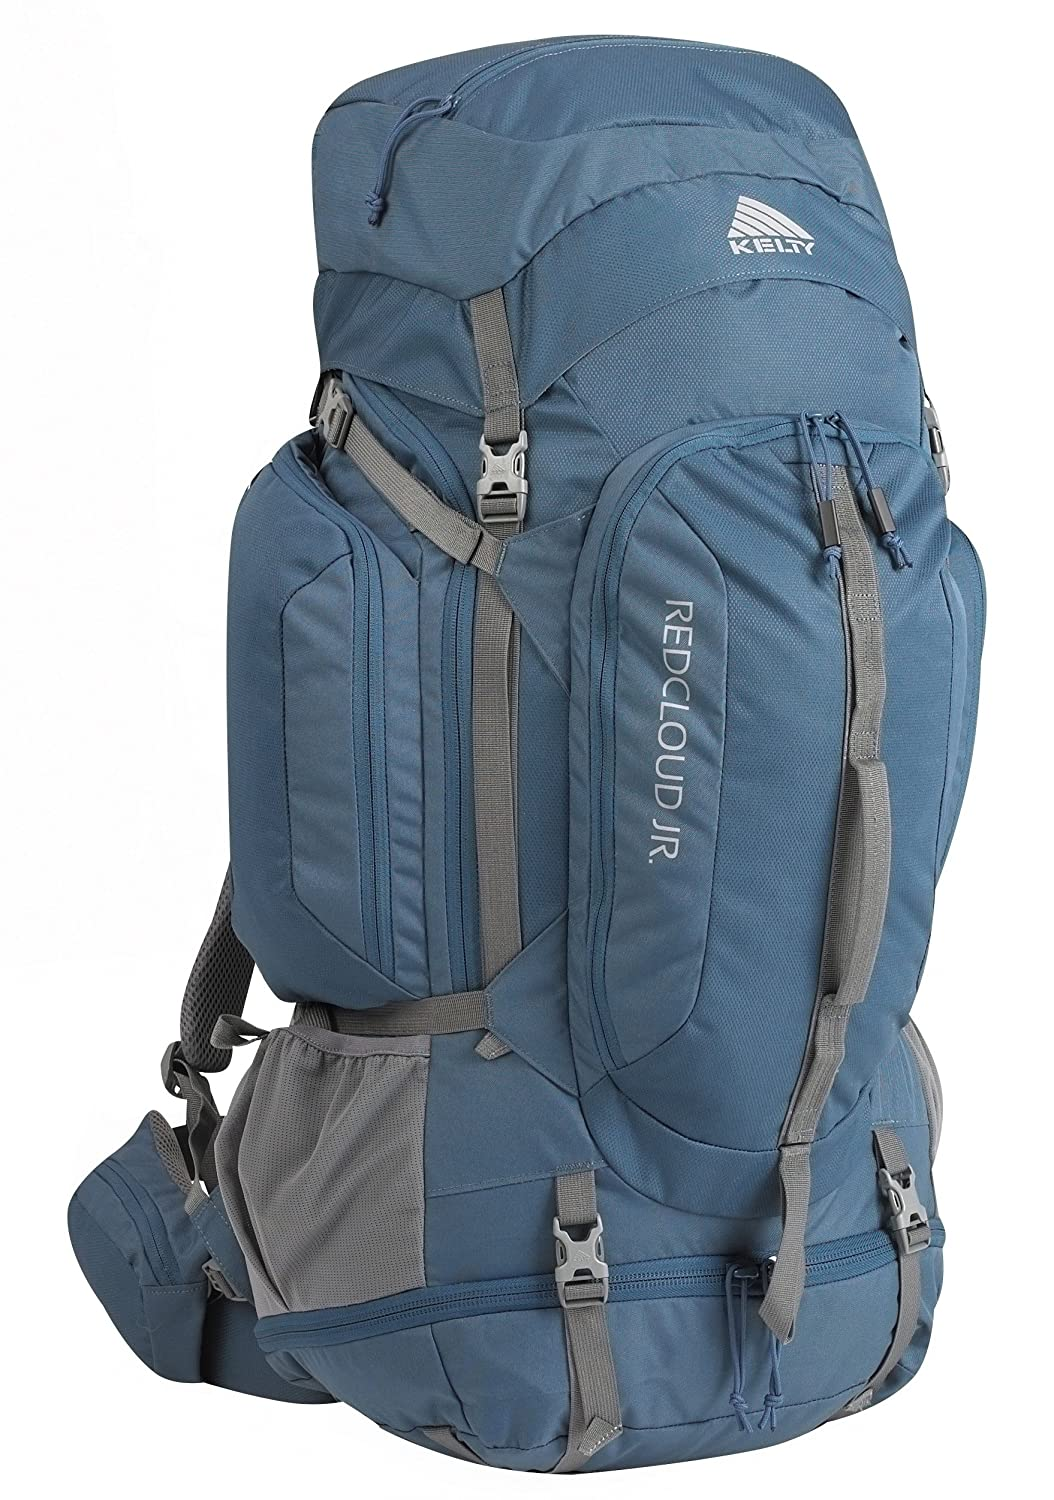 6212981376eb Kelty Youth Backpack- Fenix Toulouse Handball